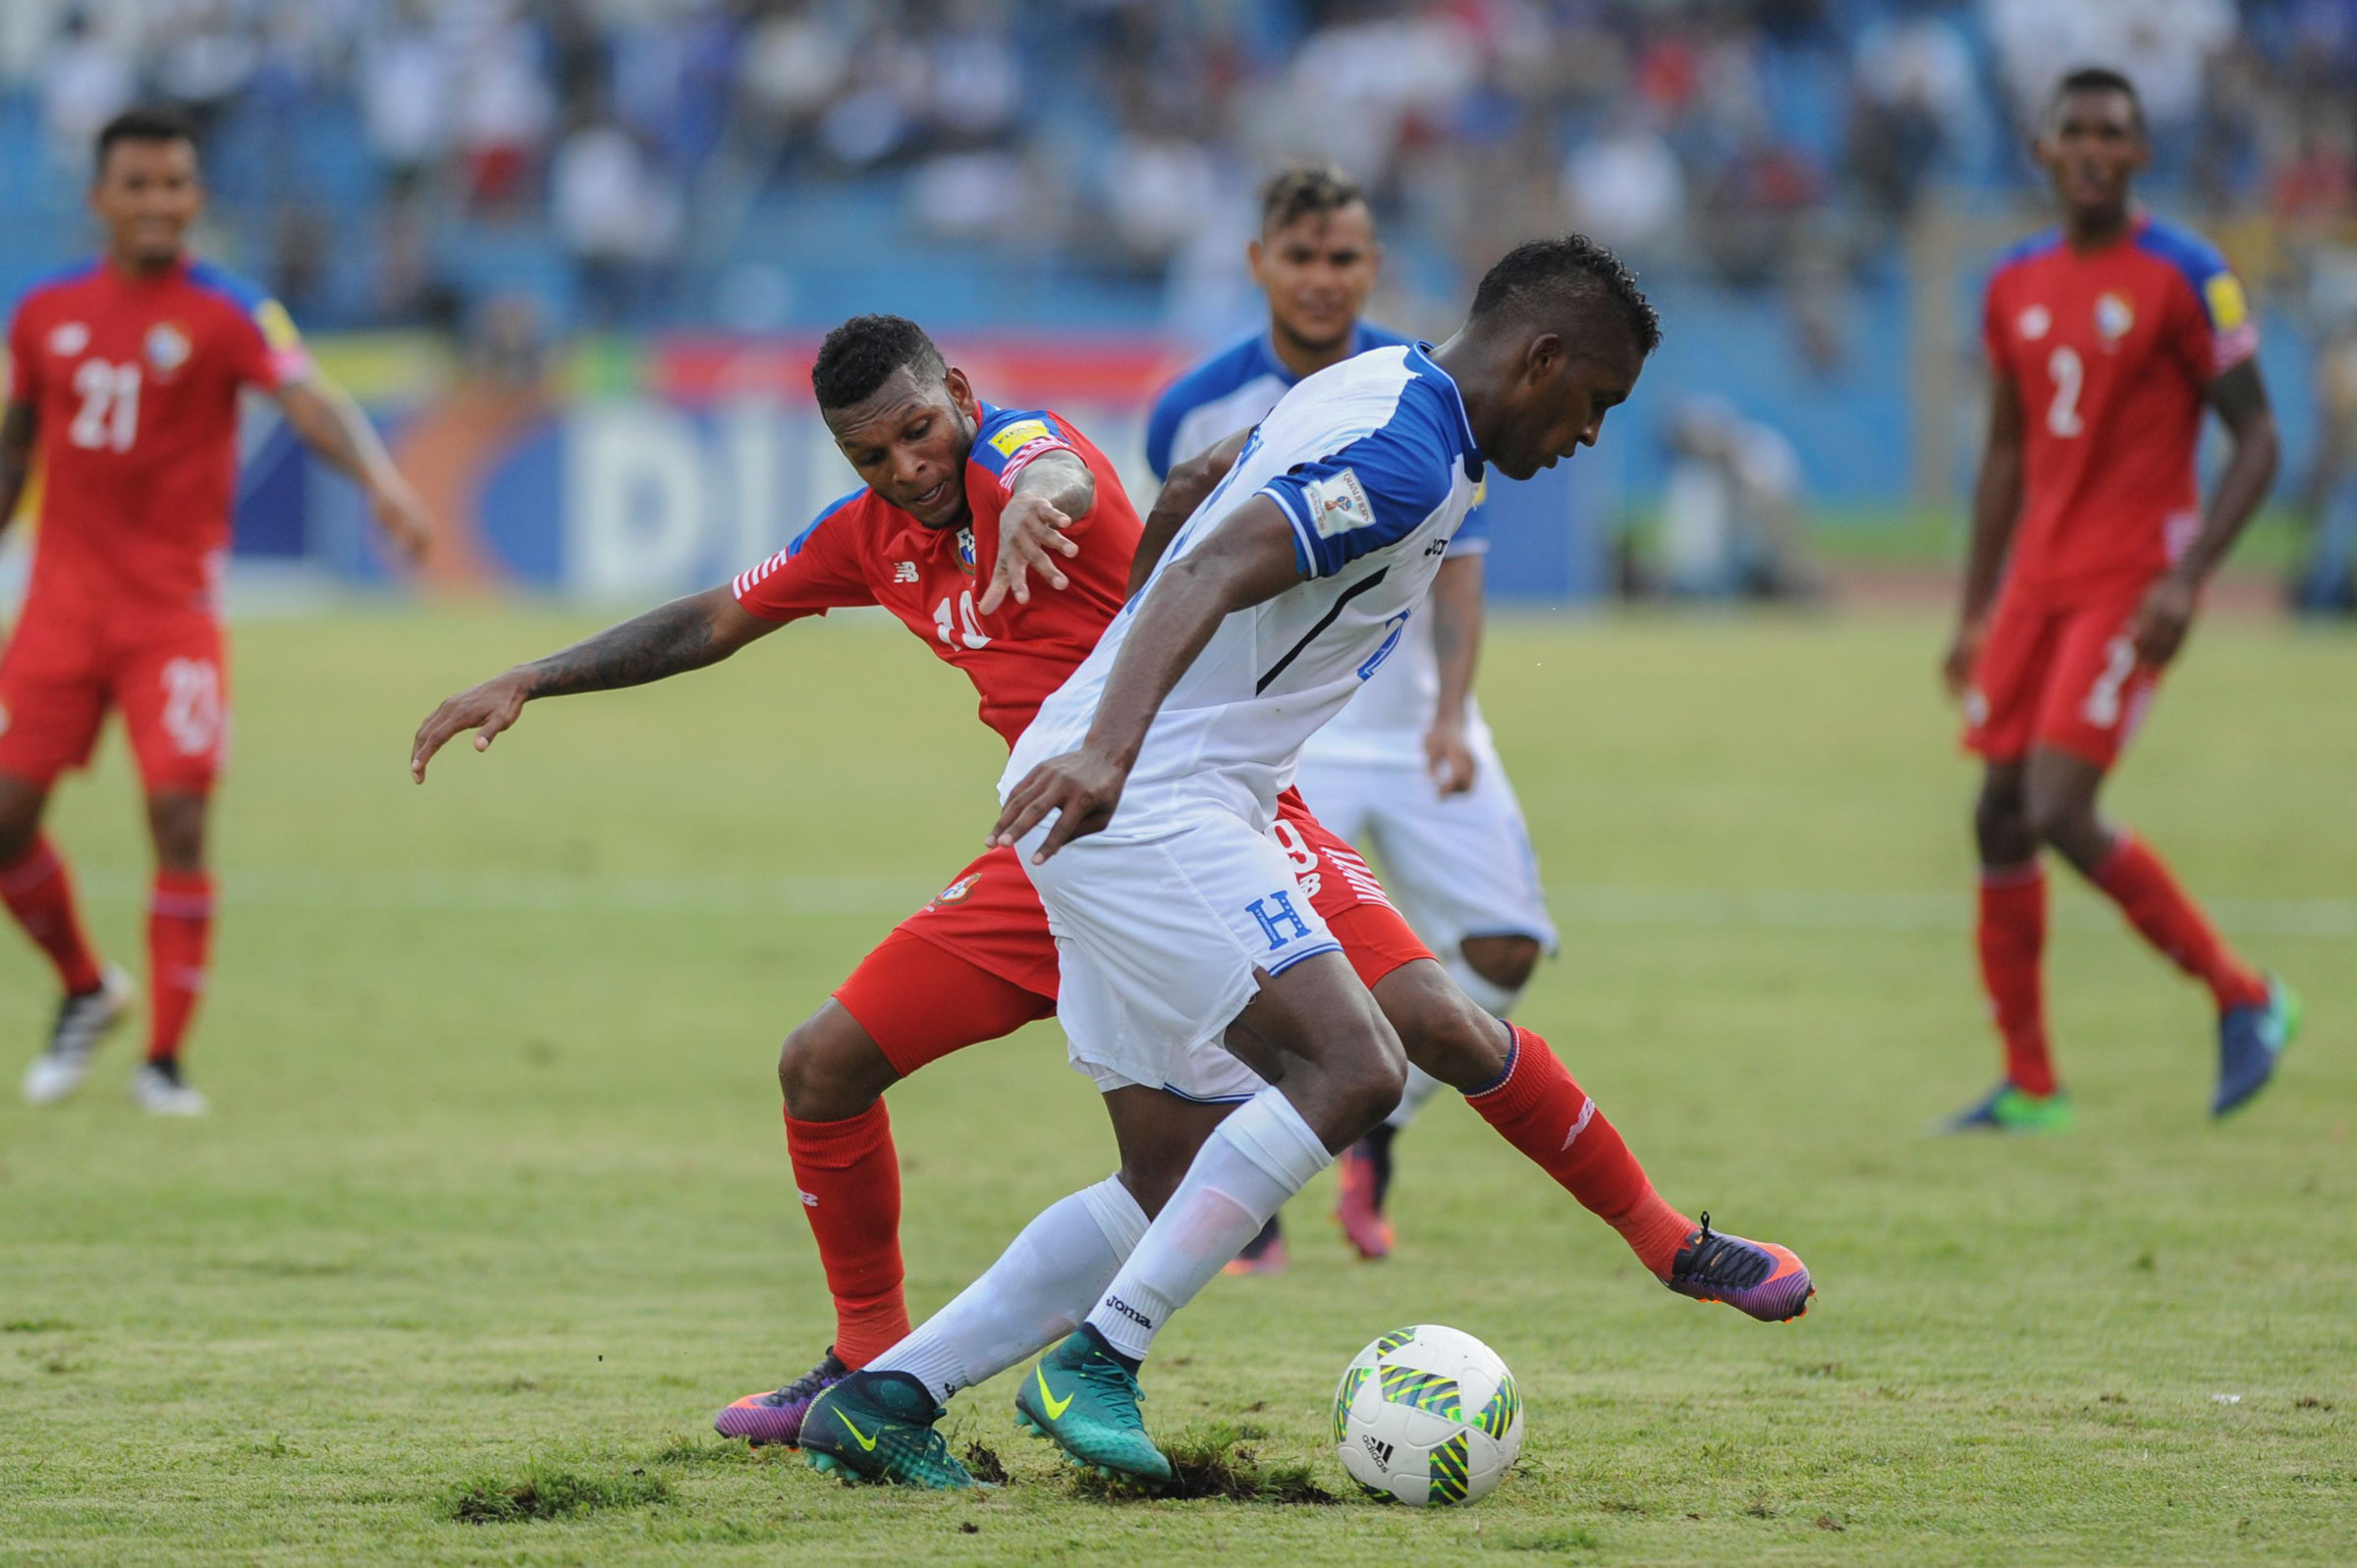 Honduras' Alberth Elis, in white, battles Panama's Alberto Quinteros for the ball during a World Cup qualifier in 2016.